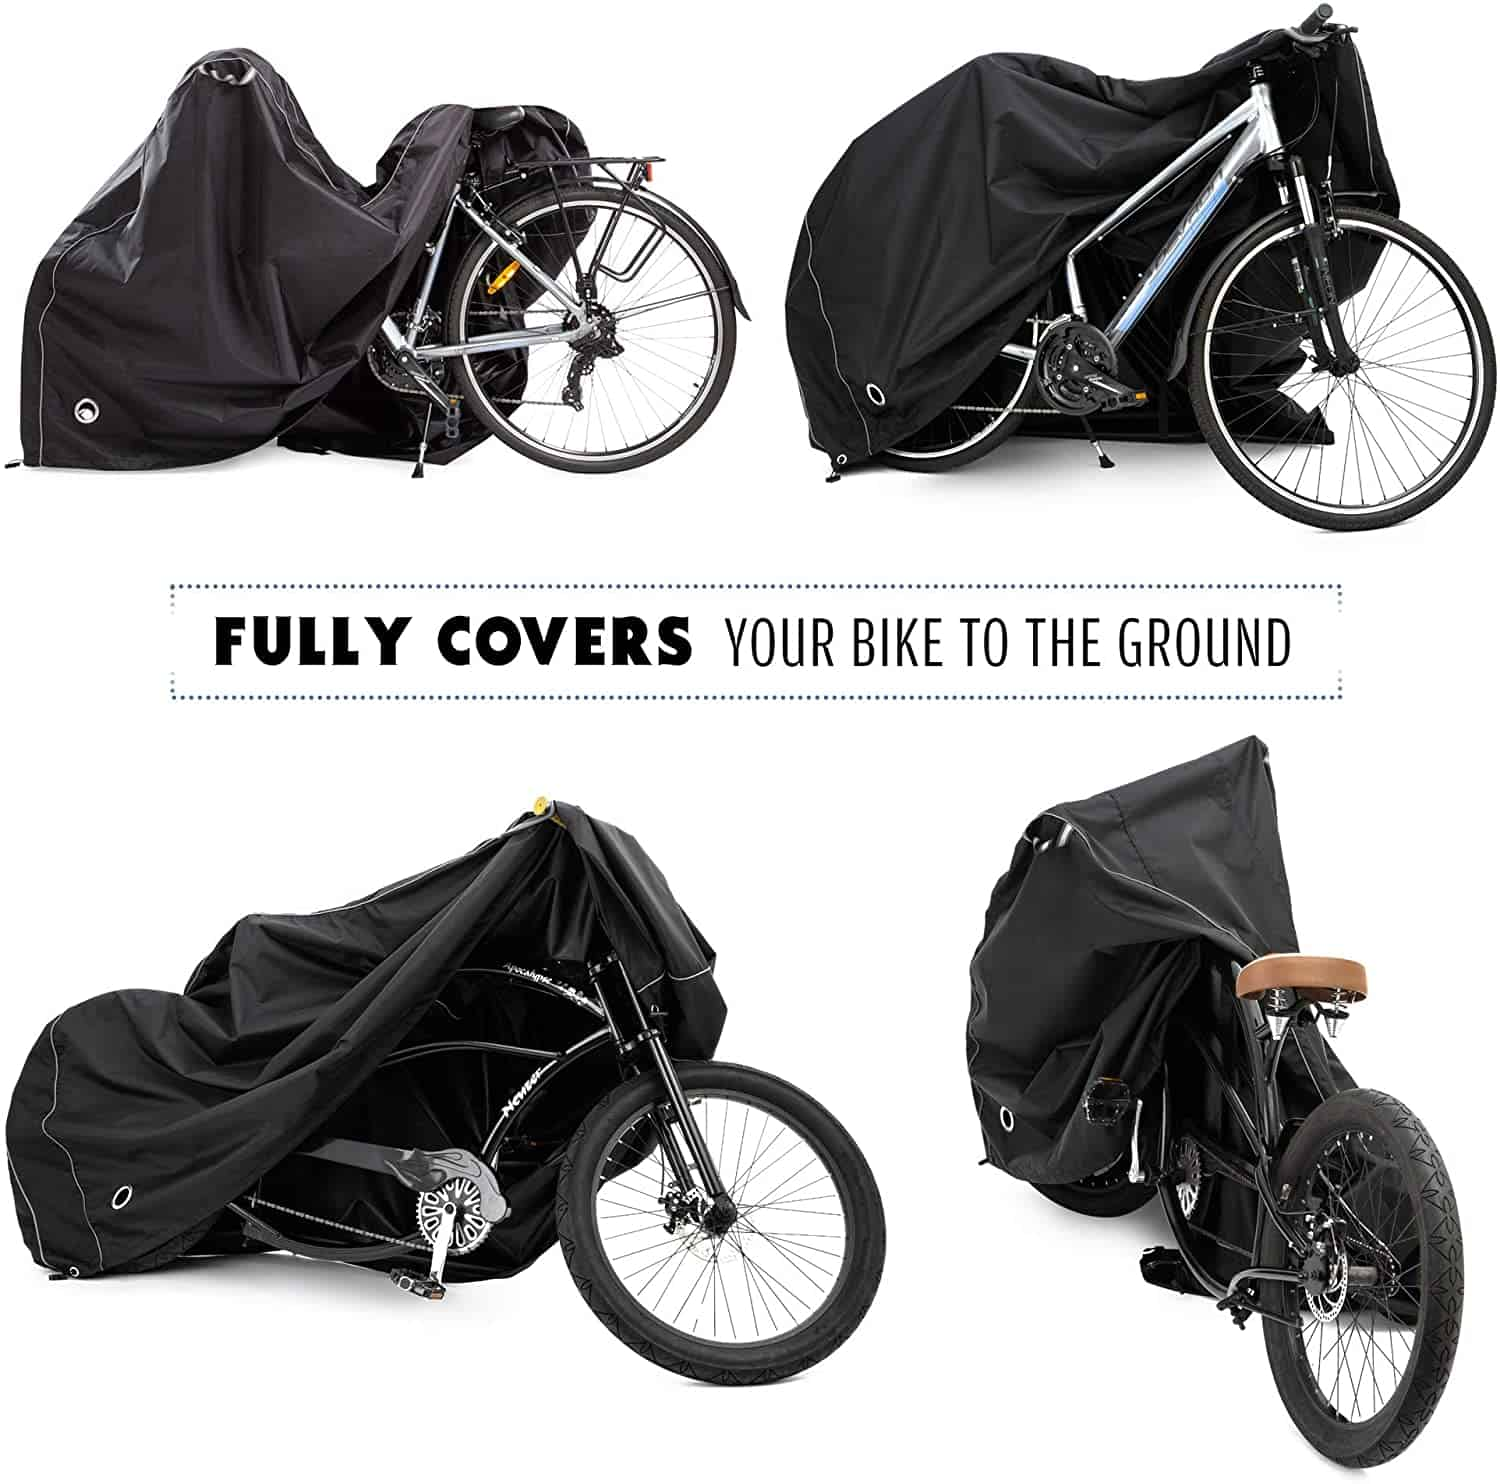 Best Bike Cover: Team Obsidian Bike Heavy Duty Ripstop